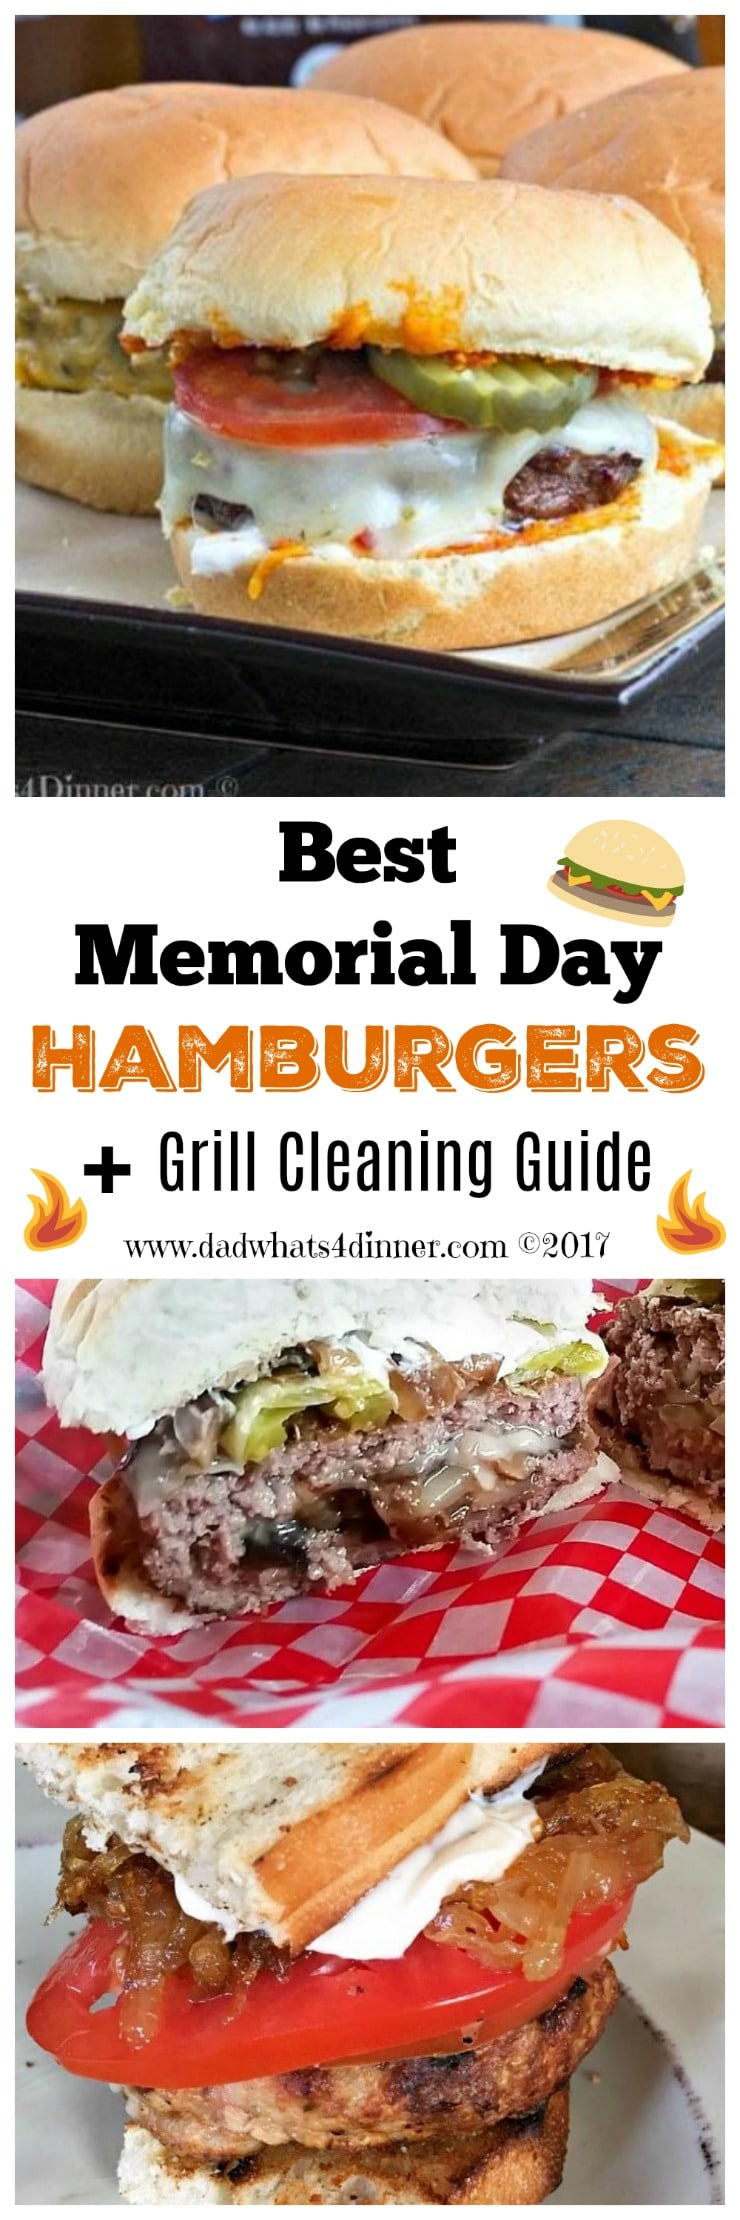 Summer grilling season is in full swing and my Best Memorial Day Hamburgers plus Grill Cleaning Guide is all you need to keep the family fed and happy. #BBQWeek www.dadwhats4dinner.com